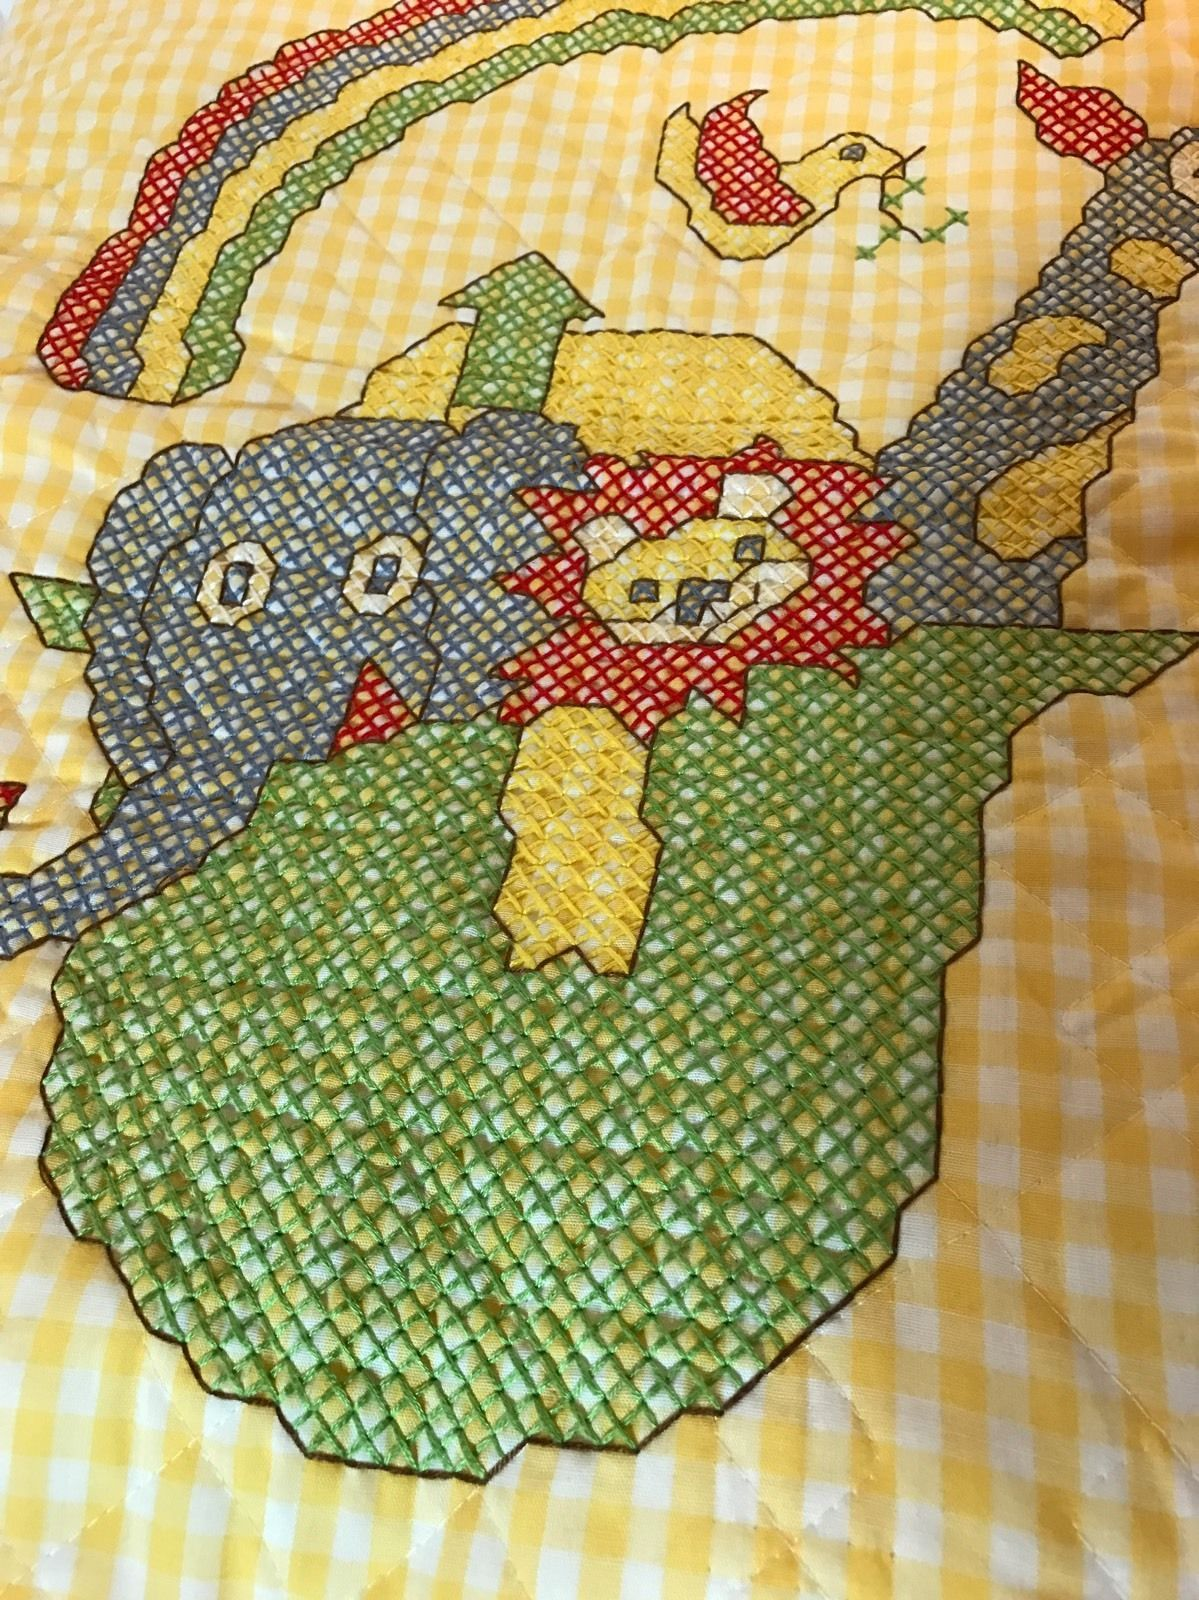 Completed Cross Stitch Baby Quilt Noah's Ark Yellow Rainbow Animals